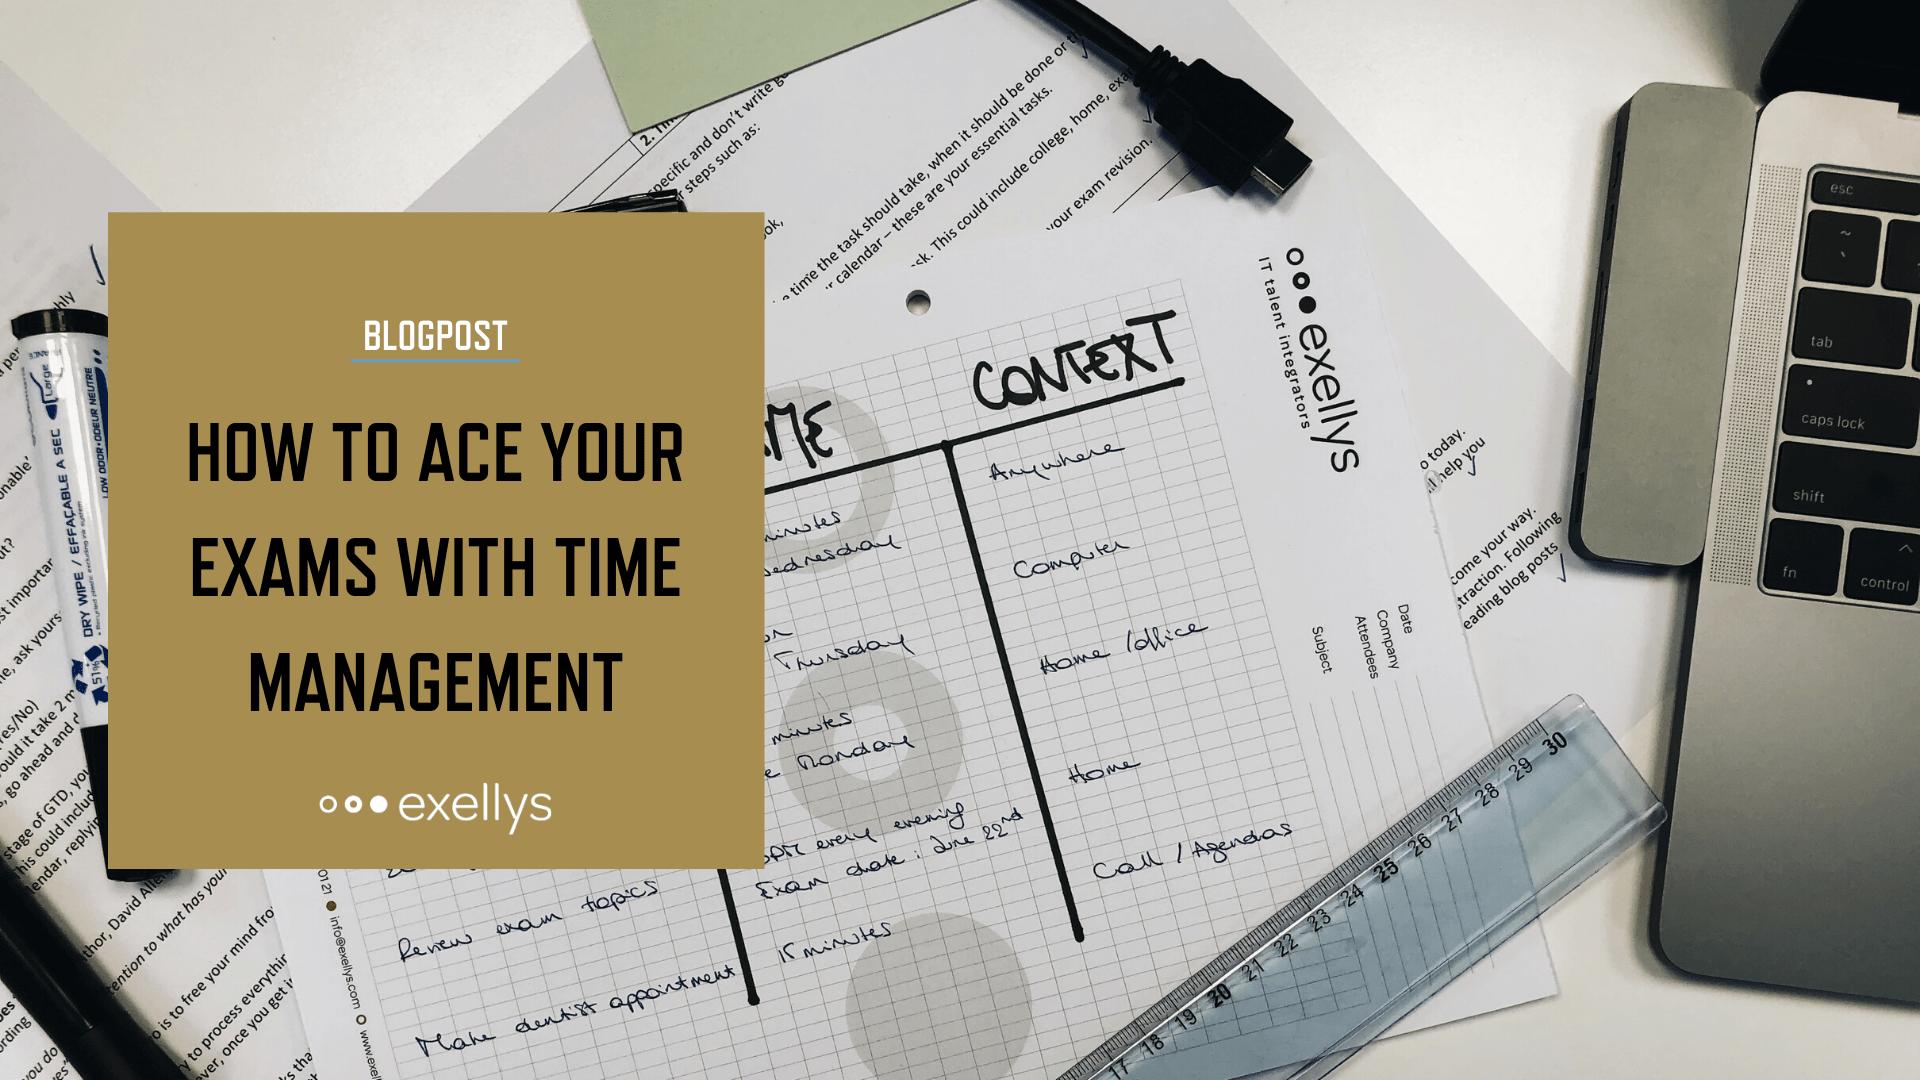 How to ace your exams with time management - Social share image